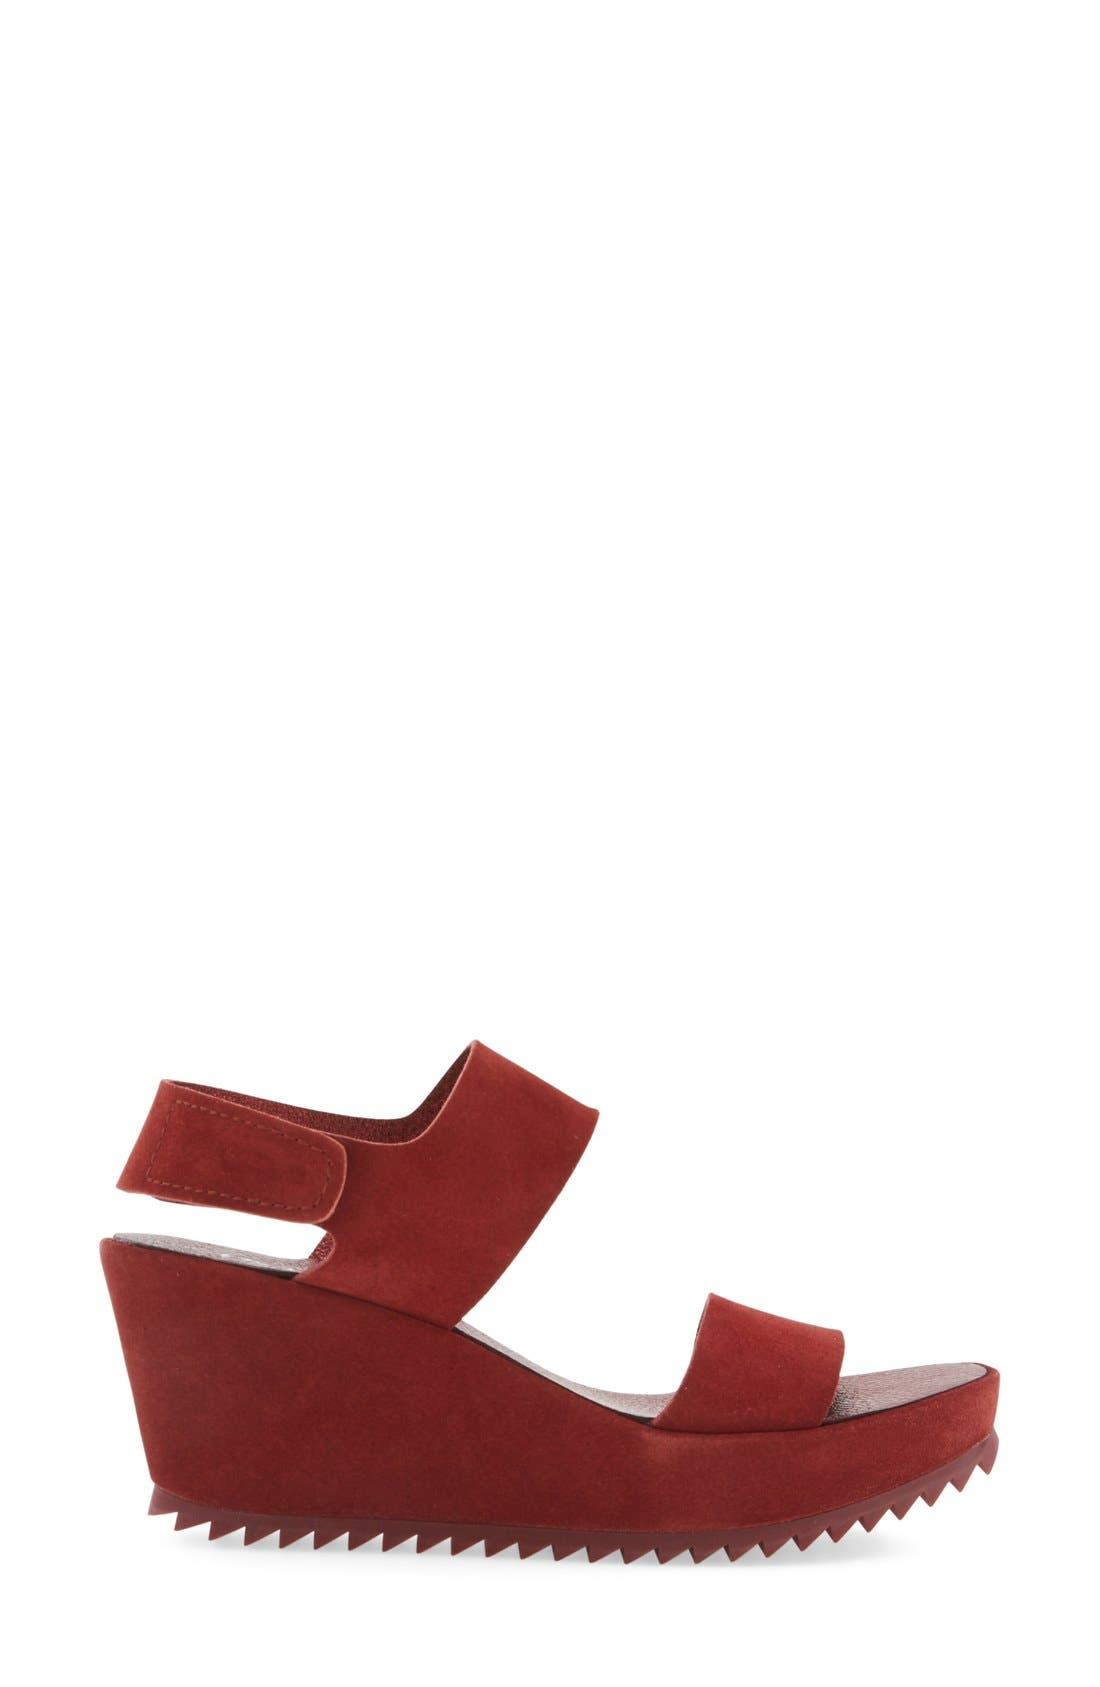 'Fiona' Wedge Sandal,                             Alternate thumbnail 4, color,                             Red Leather